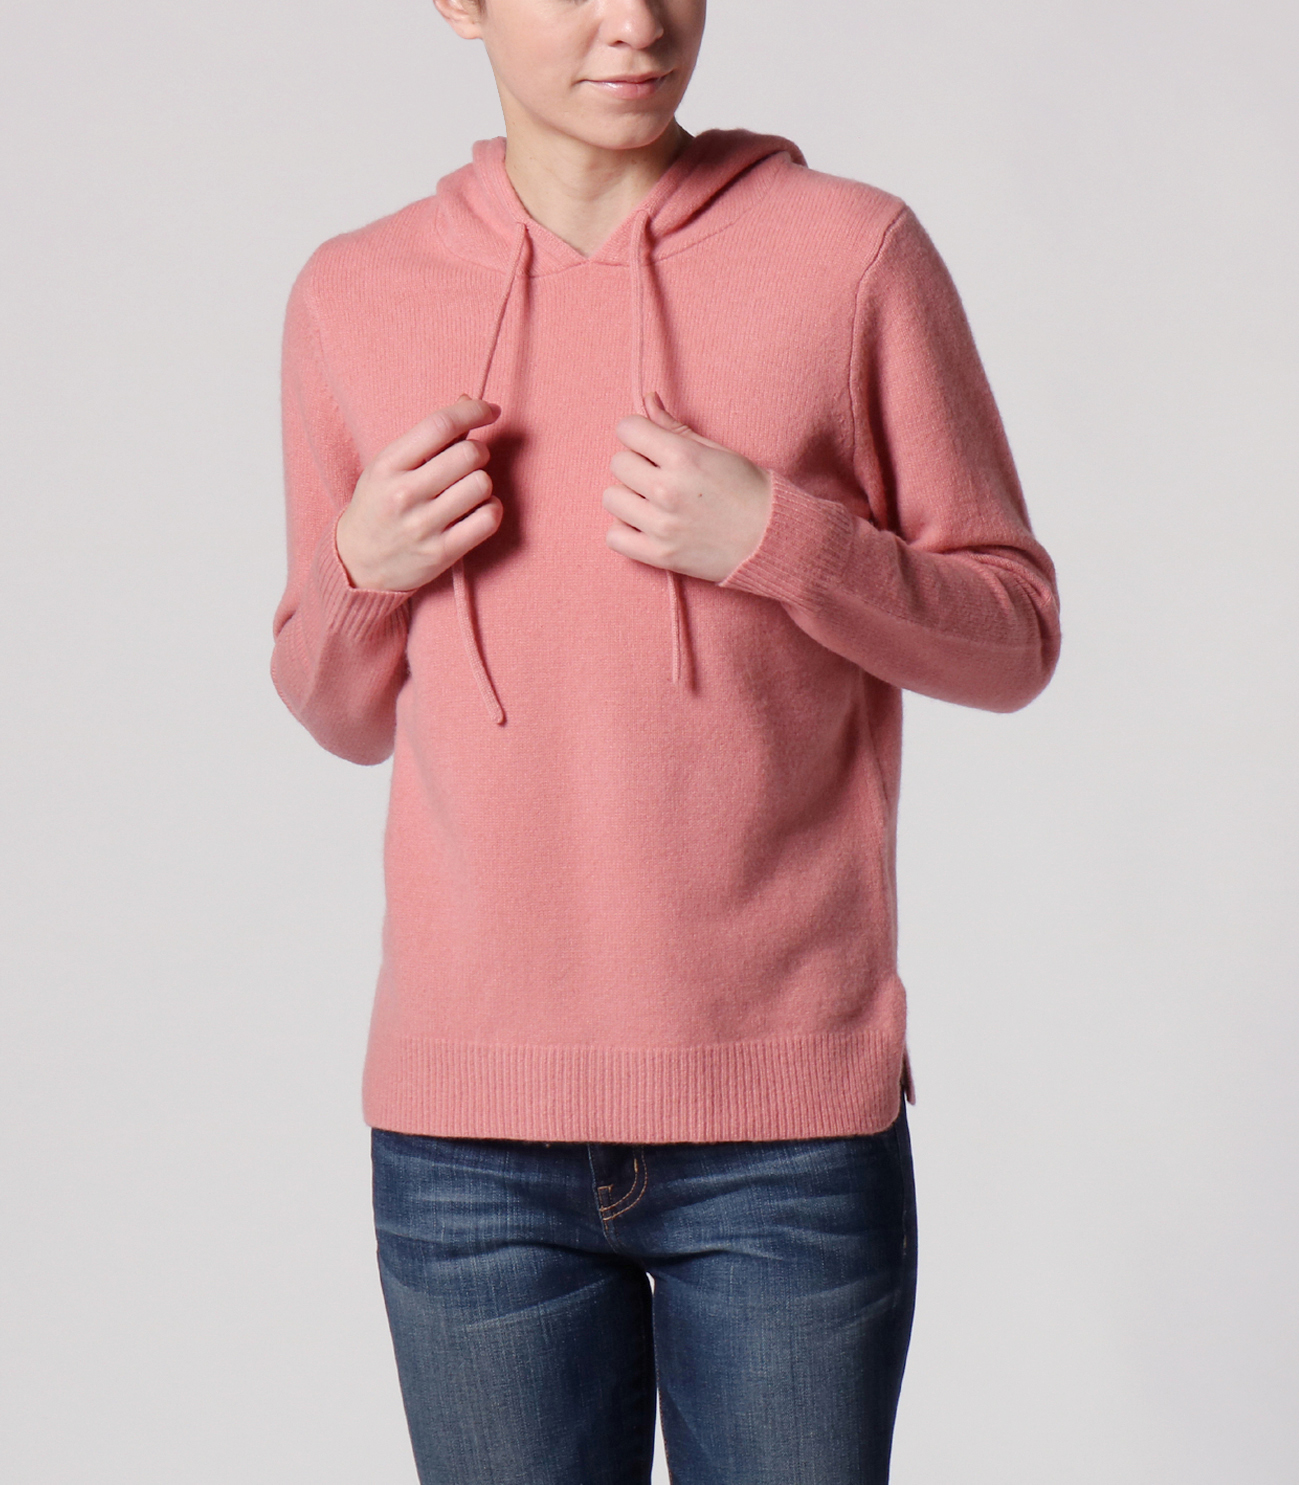 lt smooth wool hooded pullover 詳細画像 dusty rose 6